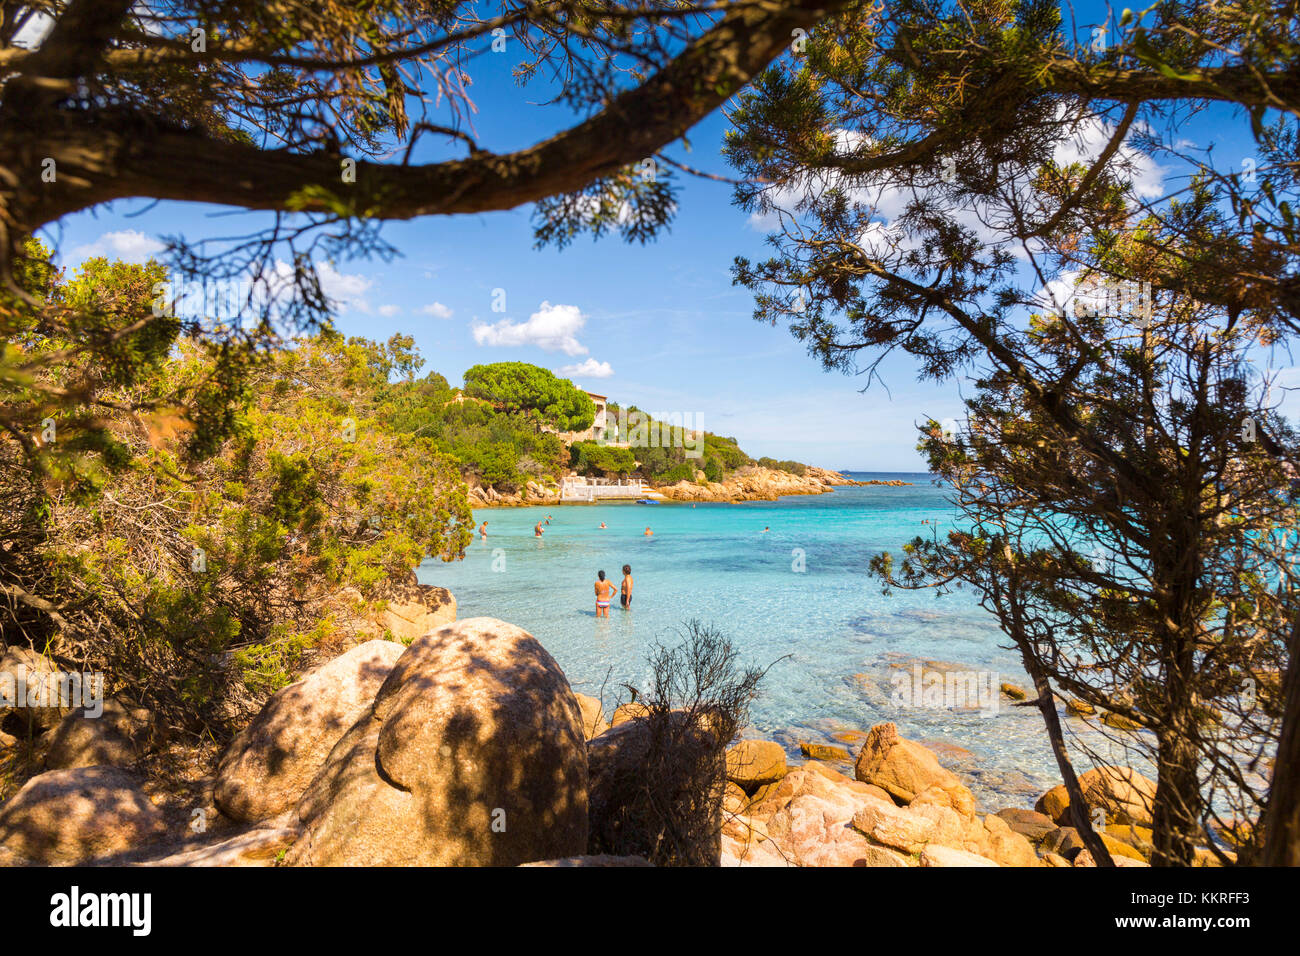 Rocks and trees in Capriccioli beach, Arzachena Costa Smeralda, Olbia-Tempio province, Sardinia district, Italy - Stock Image